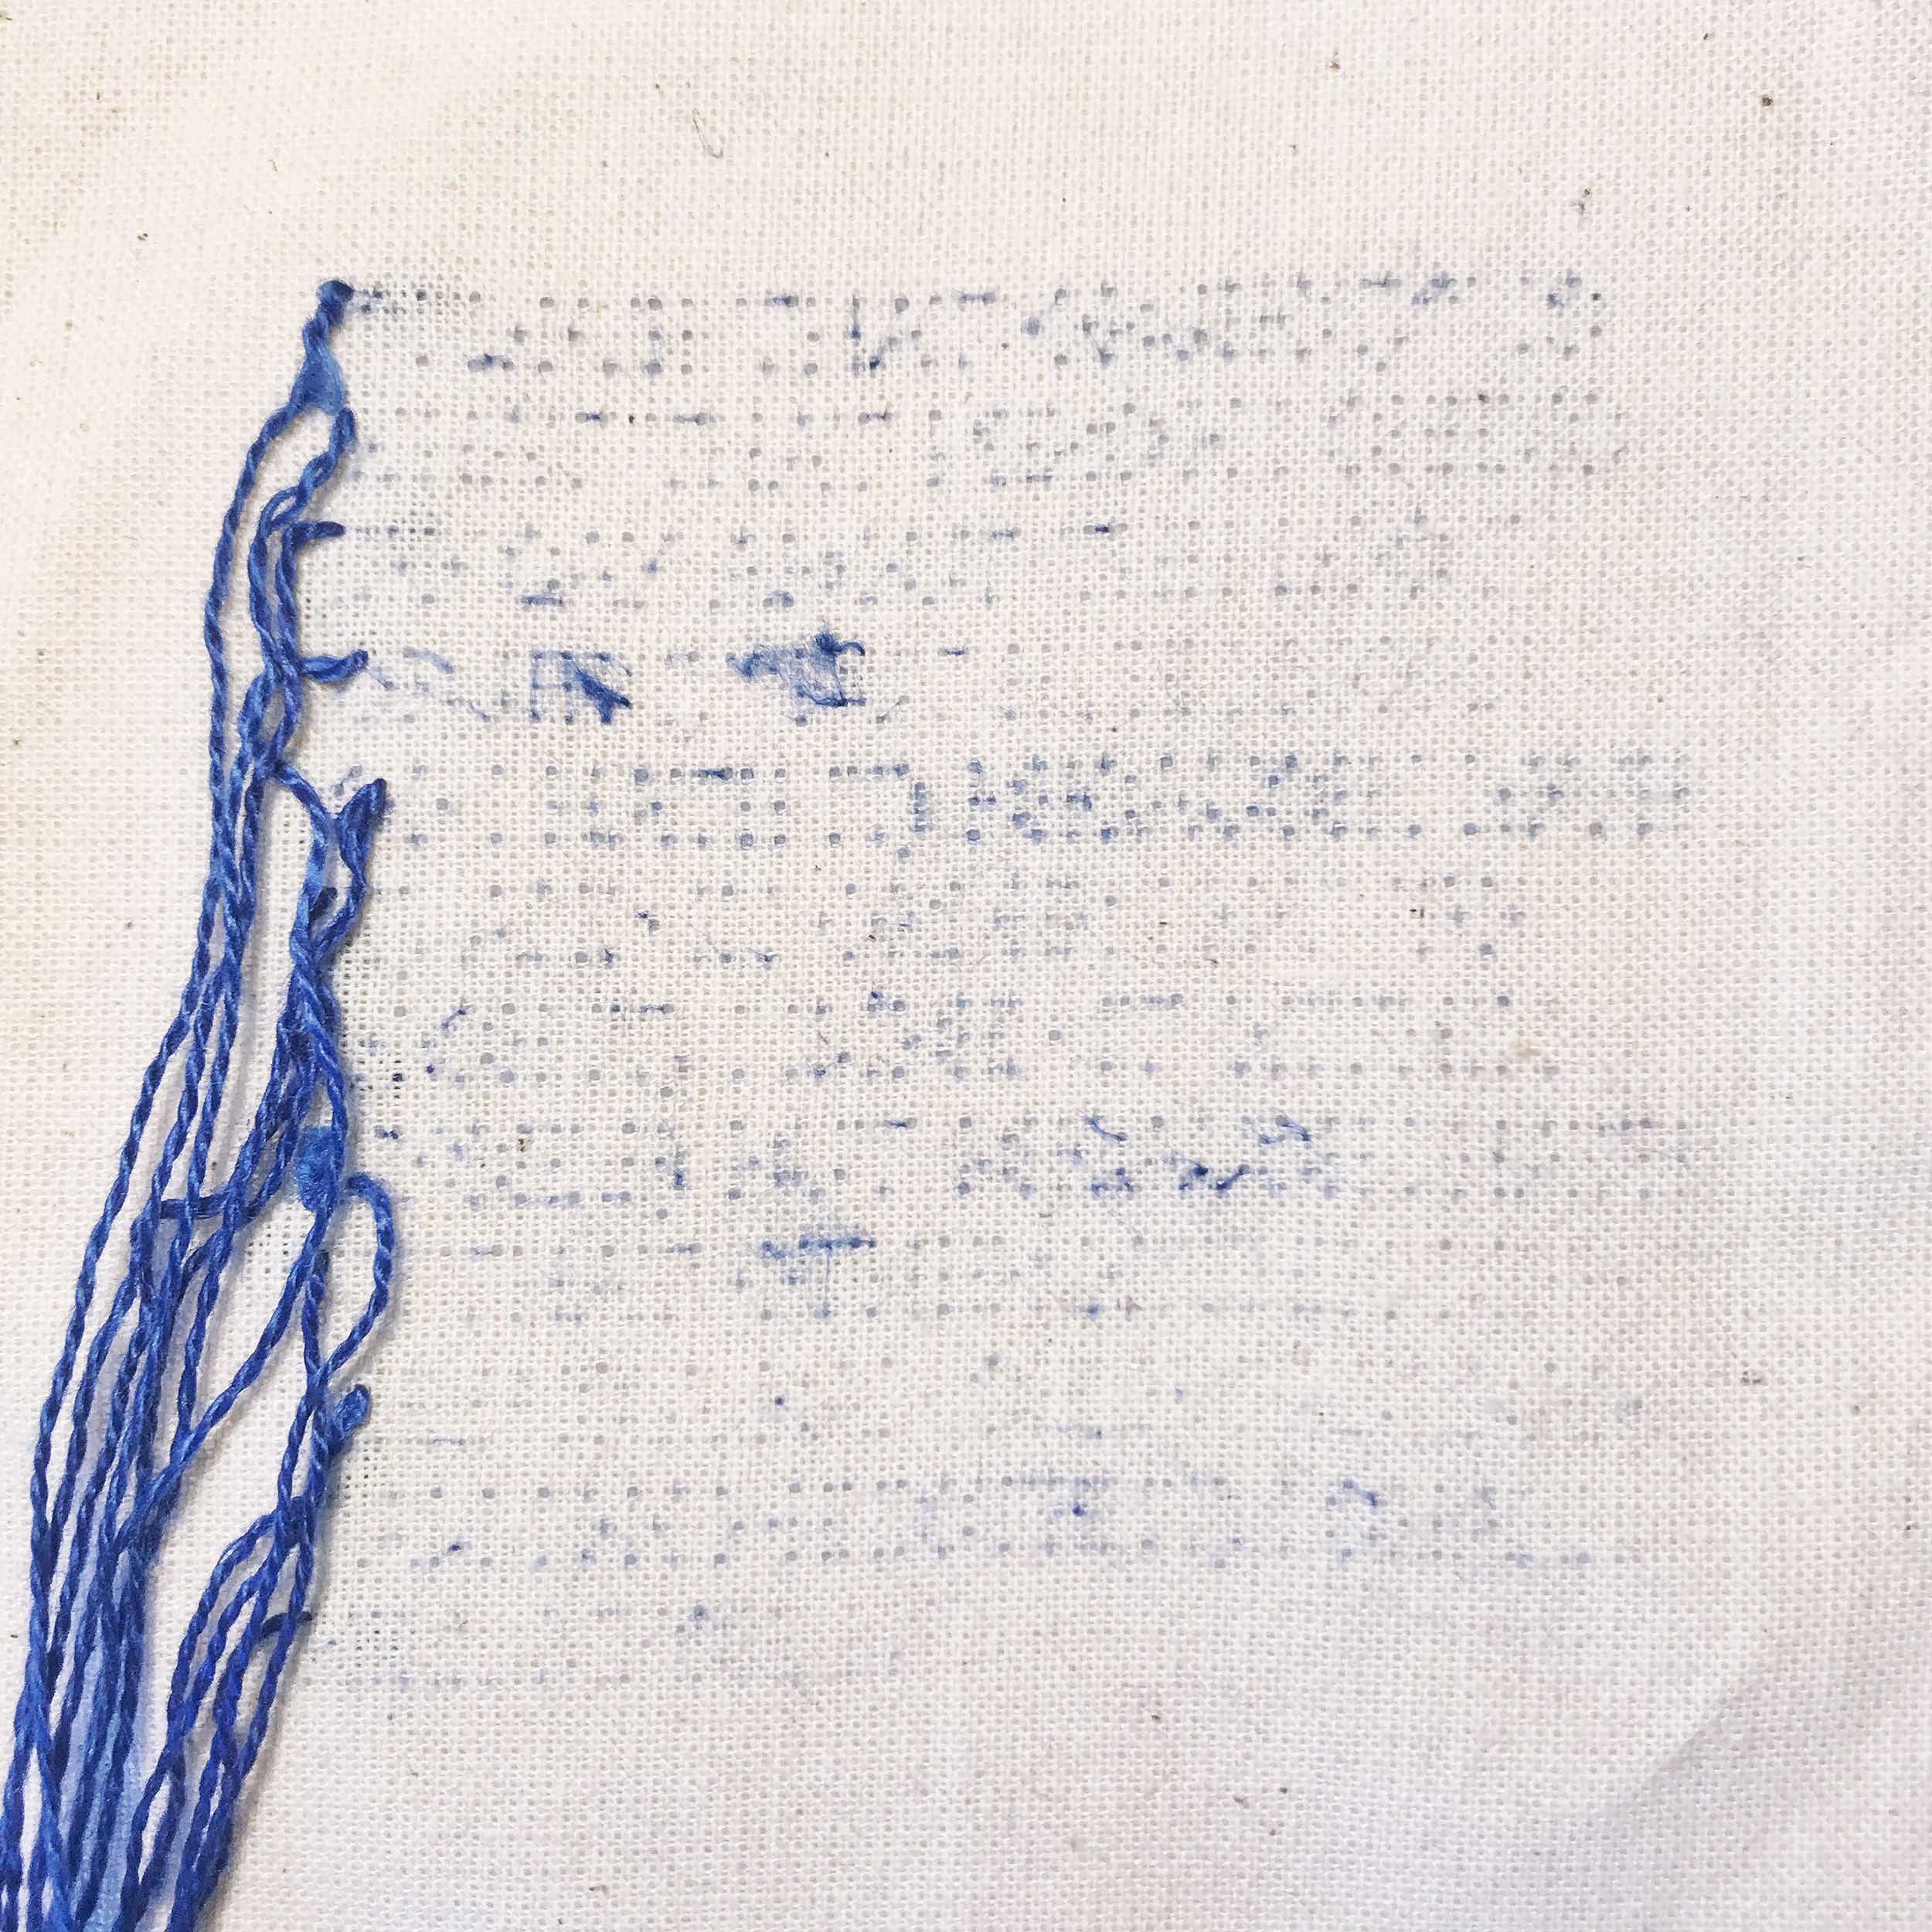 [UNTITLED MEMORY PROJECT]   Created in response to a class called  Transcultural Memory  in the MA Contemporary Art Theory programme at Goldsmiths, University of London, I am stitching a series of five quotes from texts such as Julia Kristeva's  Black Sun: Depression and Melancholia  and Sigmund Freud's  Mourning and Melancholia . After each piece is complete, I then unpick the entire quote, leaving behind only the traces of the stitched text in the form of fibres caught in the weave of the fabric. The pieces will be paired only with a citation of the original source text.